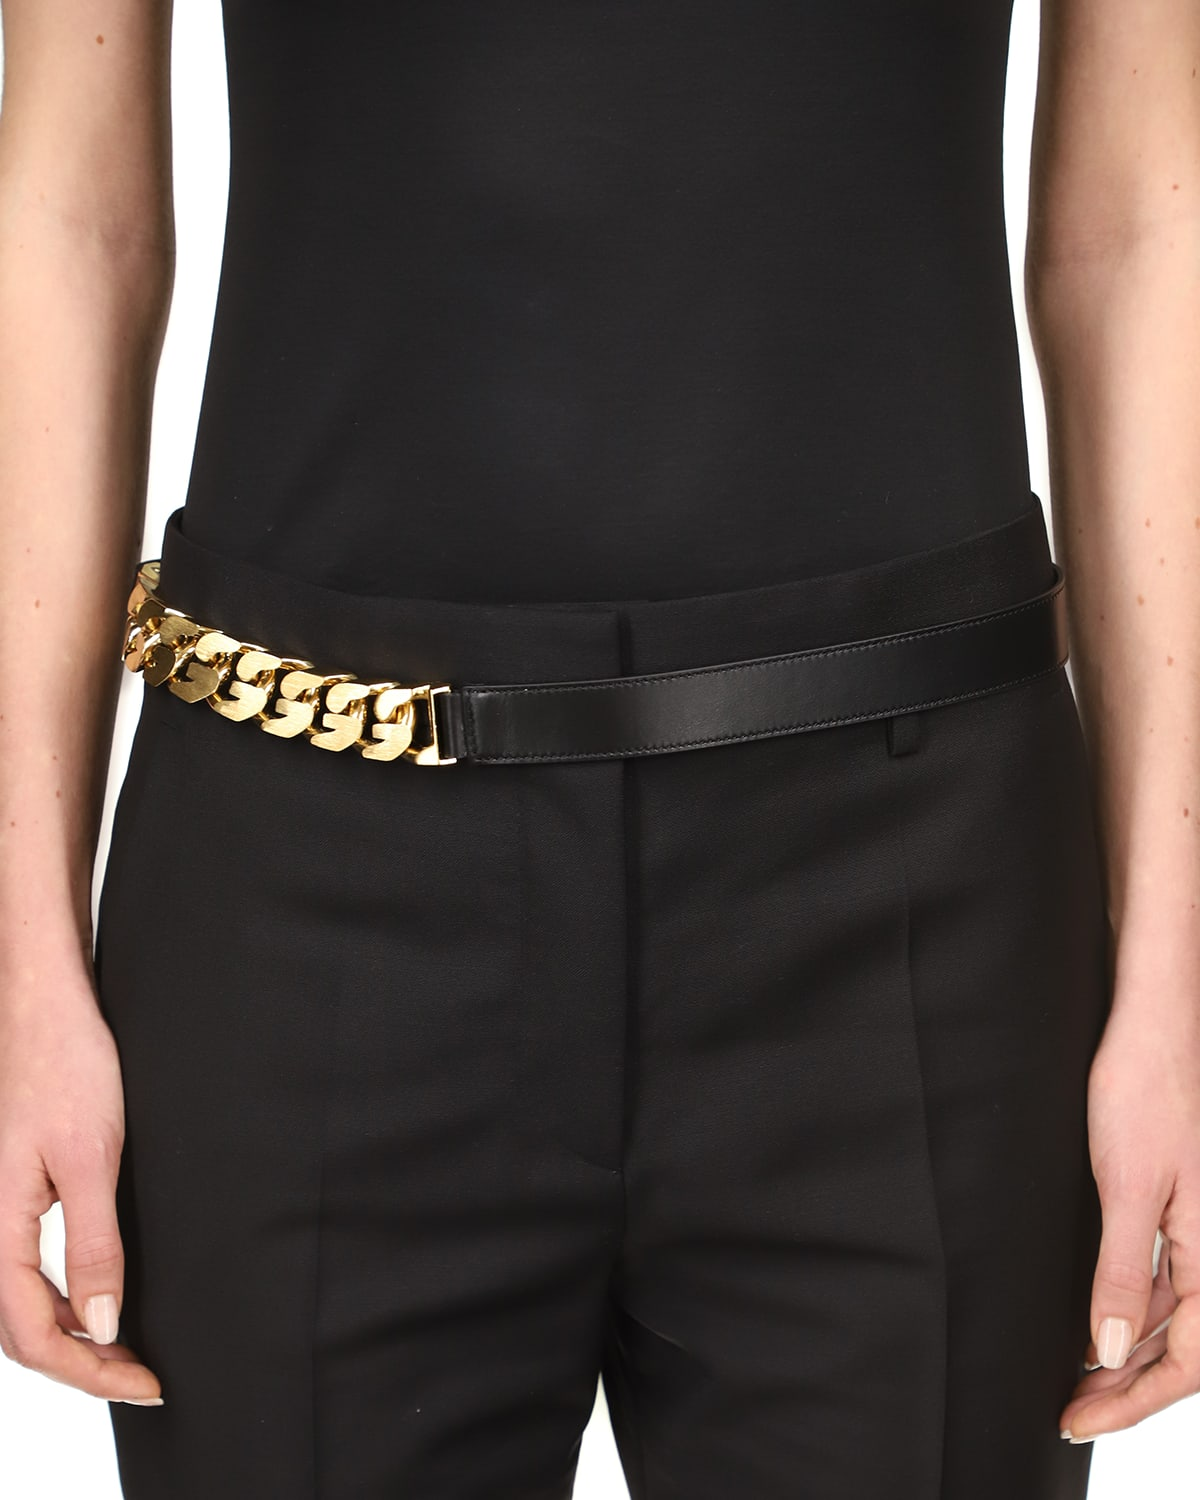 20mm Mid-Chain Leather Belt